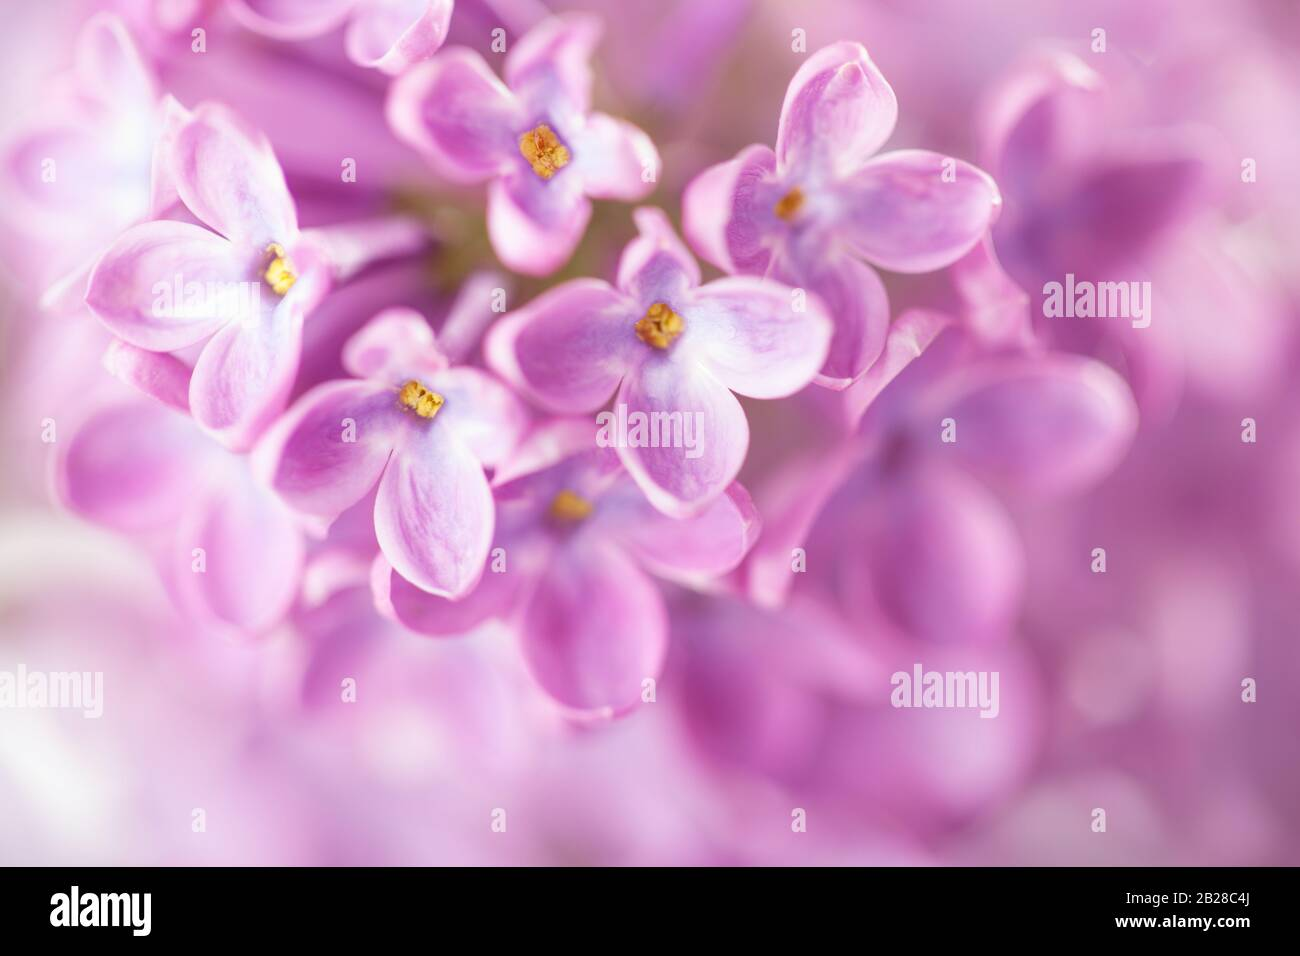 Macro Image Of Lilac Flowers Abstract Floral Background Gentle Light Purple Flower Background Very Shallow Depth Of Field Selective Focus Stock Photo Alamy